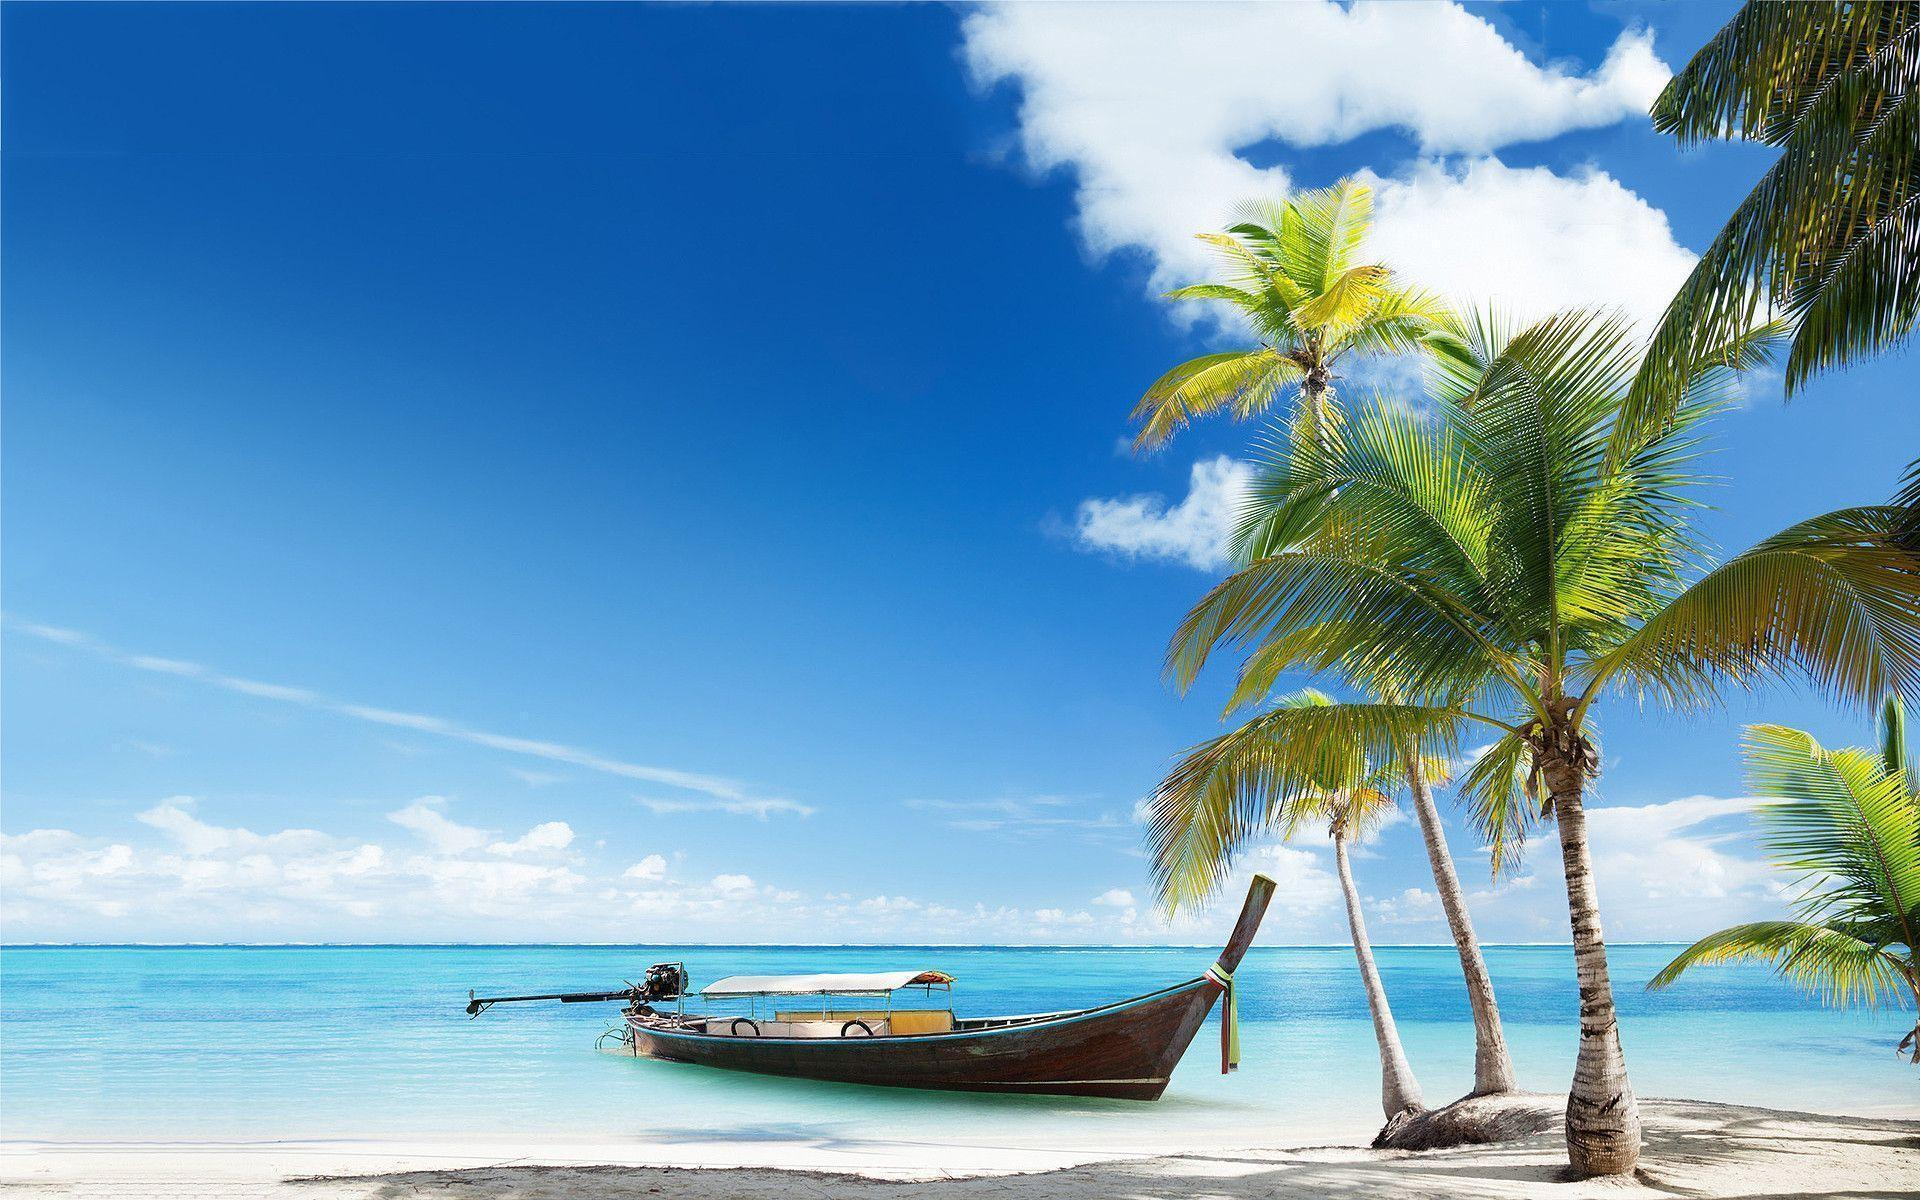 Hd Tropical Island Beach Paradise Wallpapers And Backgrounds: Tropical Beach Desktop Backgrounds